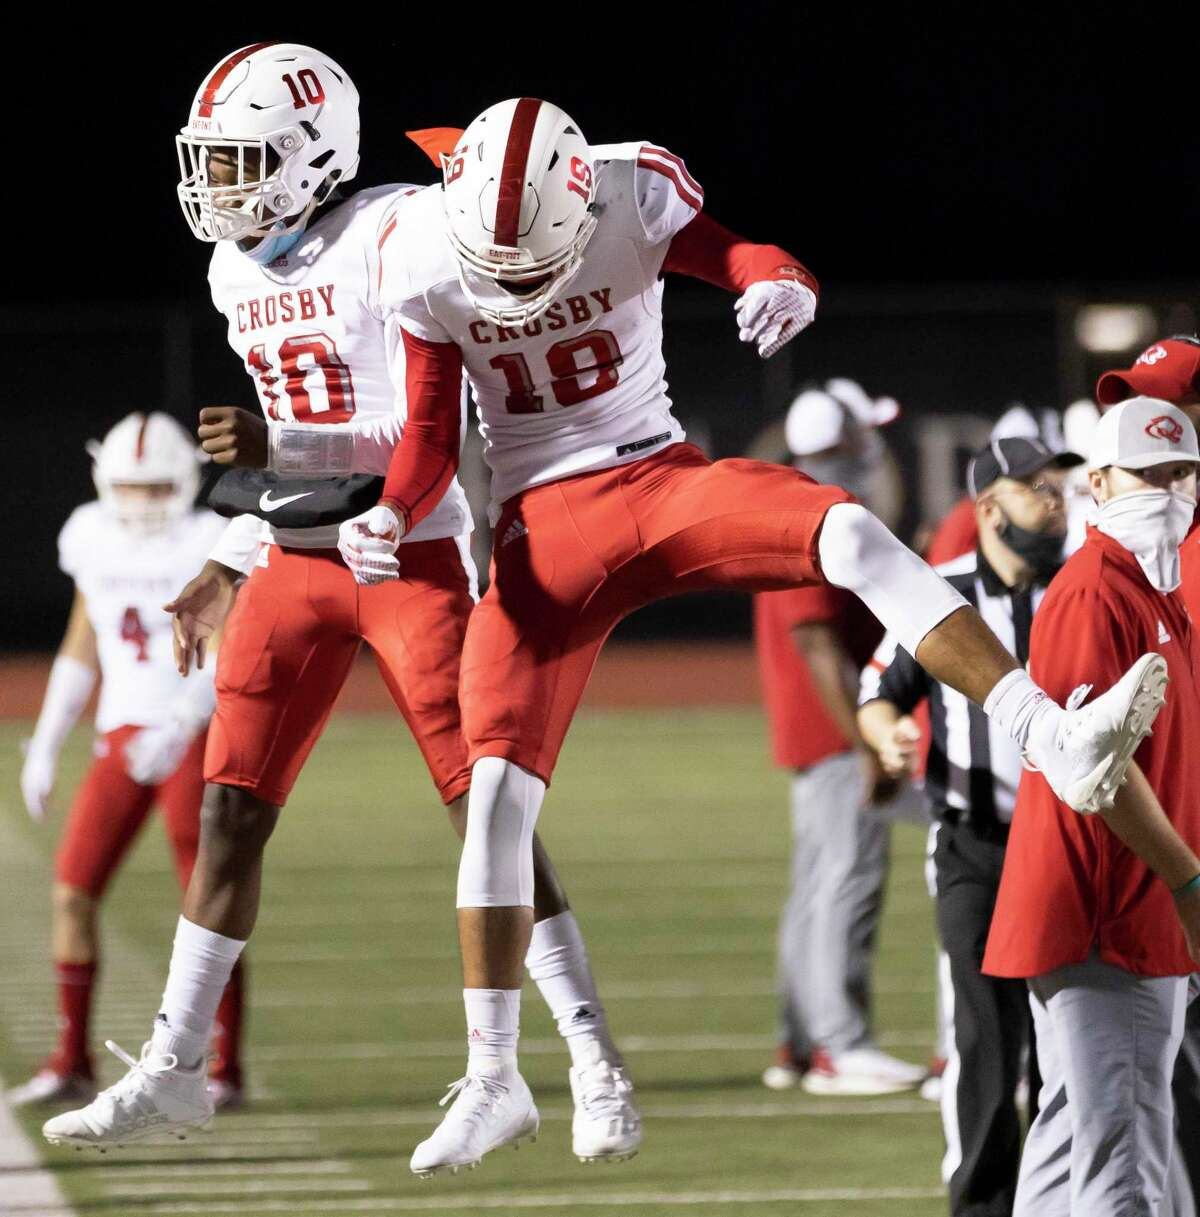 Crosby quarterback Cyrin Myles (10) and cornerback Jonathan Fuselier (19) react after they score a touchdown during the first quarter of a district 5A Division II football game against Kingwood Park at Turner Stadium, Thursday, Nov. 5, 2020, in Humble.